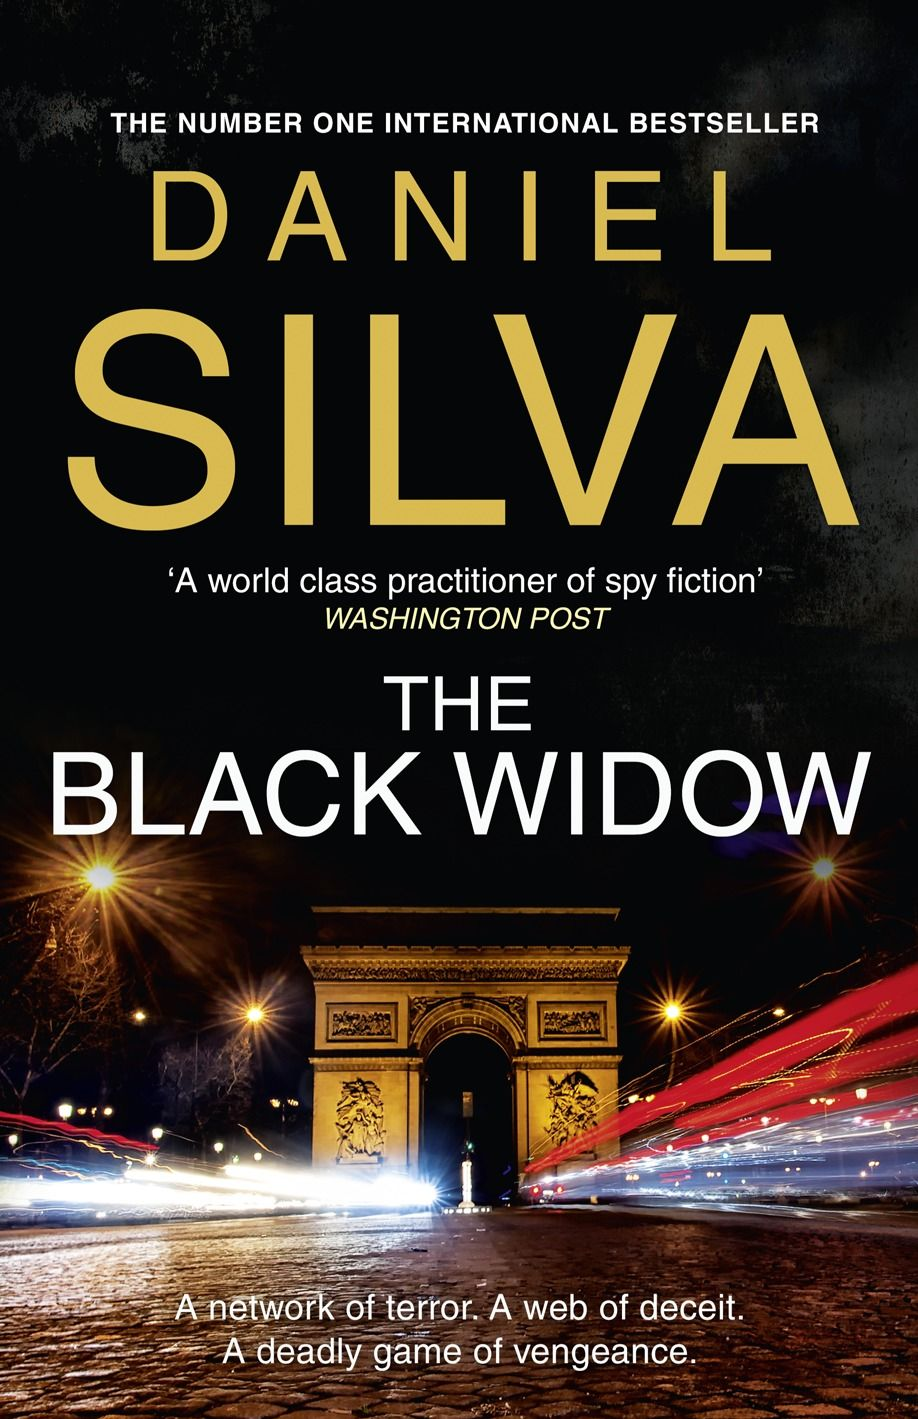 Daniel Silva delivers another stunning thriller in his